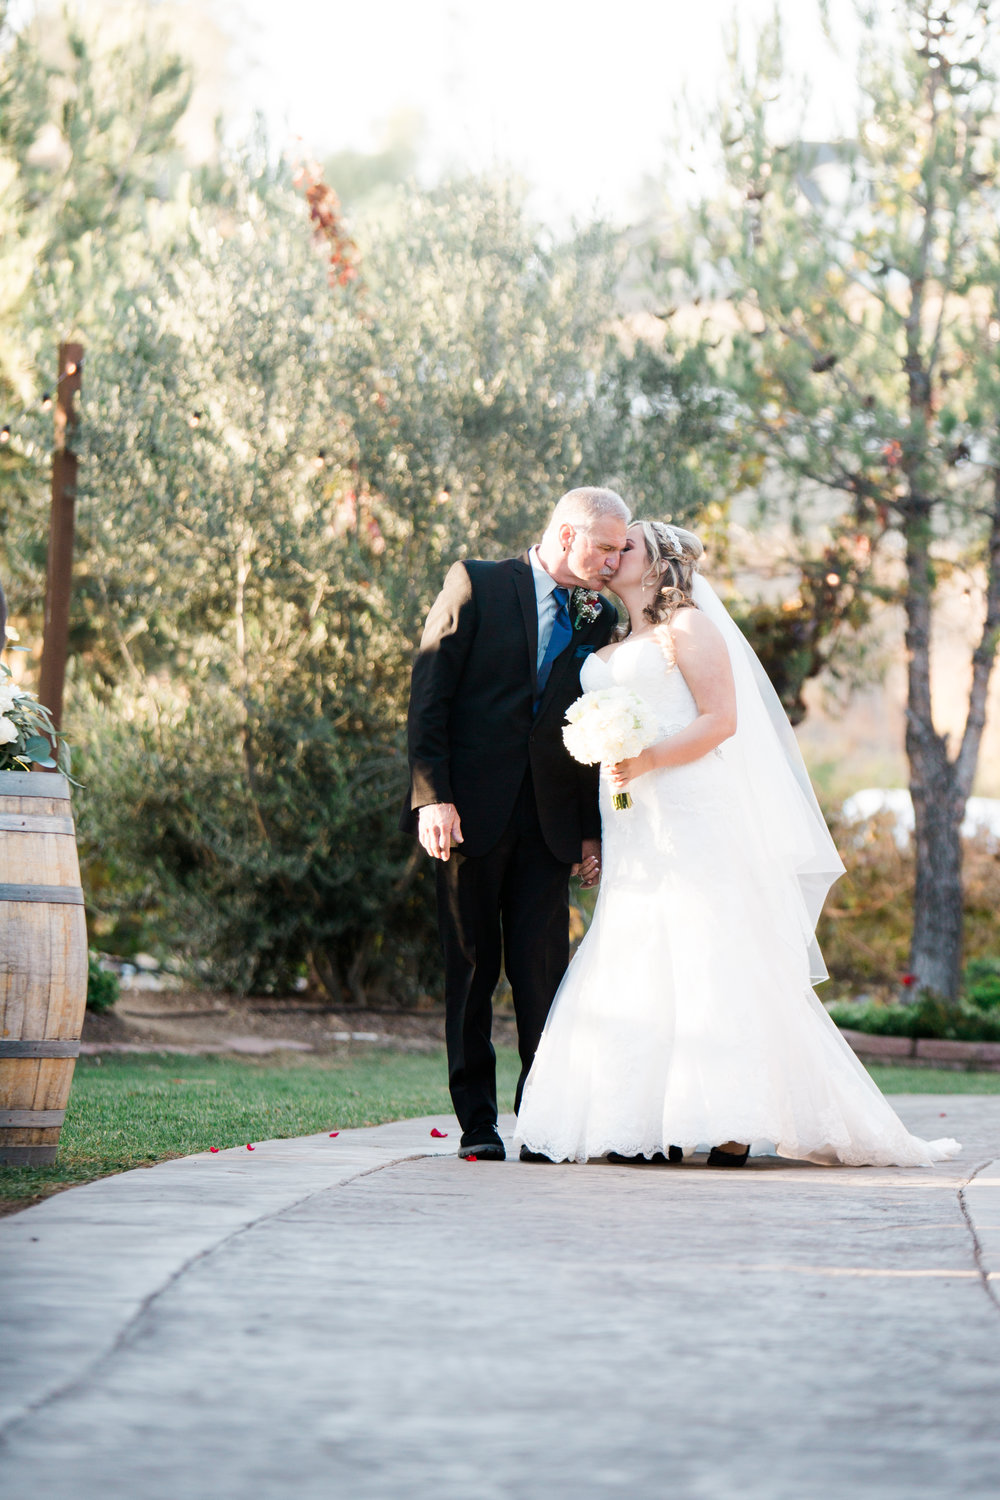 longshadow ranch winery wedding, temecula wedding photographer, heather anderson photography, winery weddings